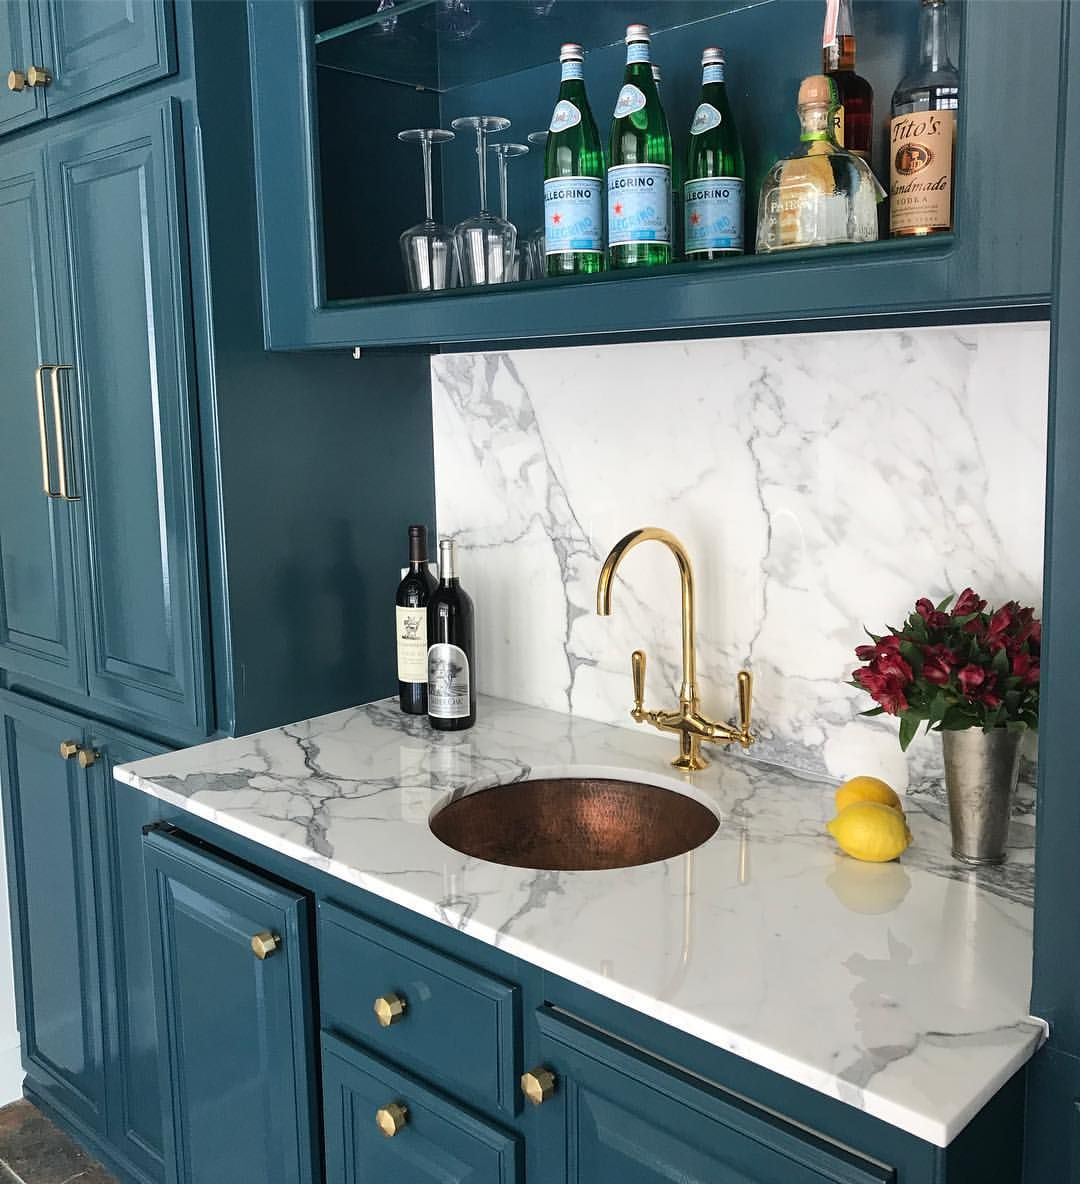 Maher Kitchen Cabinets: Pin By Ann Pailthorp On Saucy Kitchens In 2019